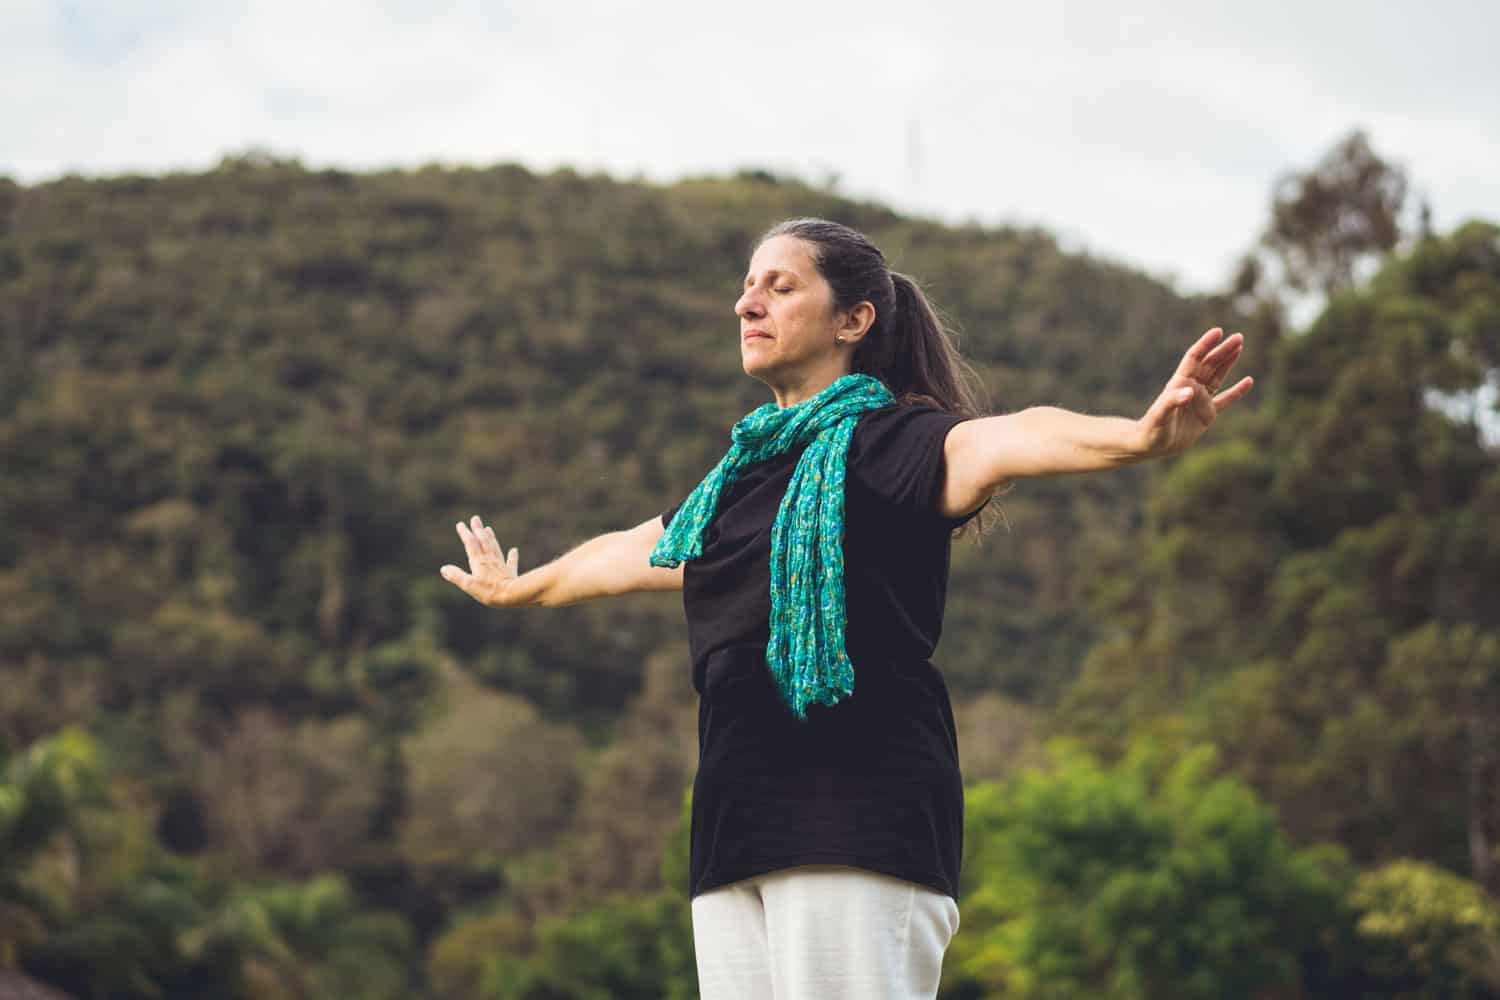 Woman meditating with arms raised